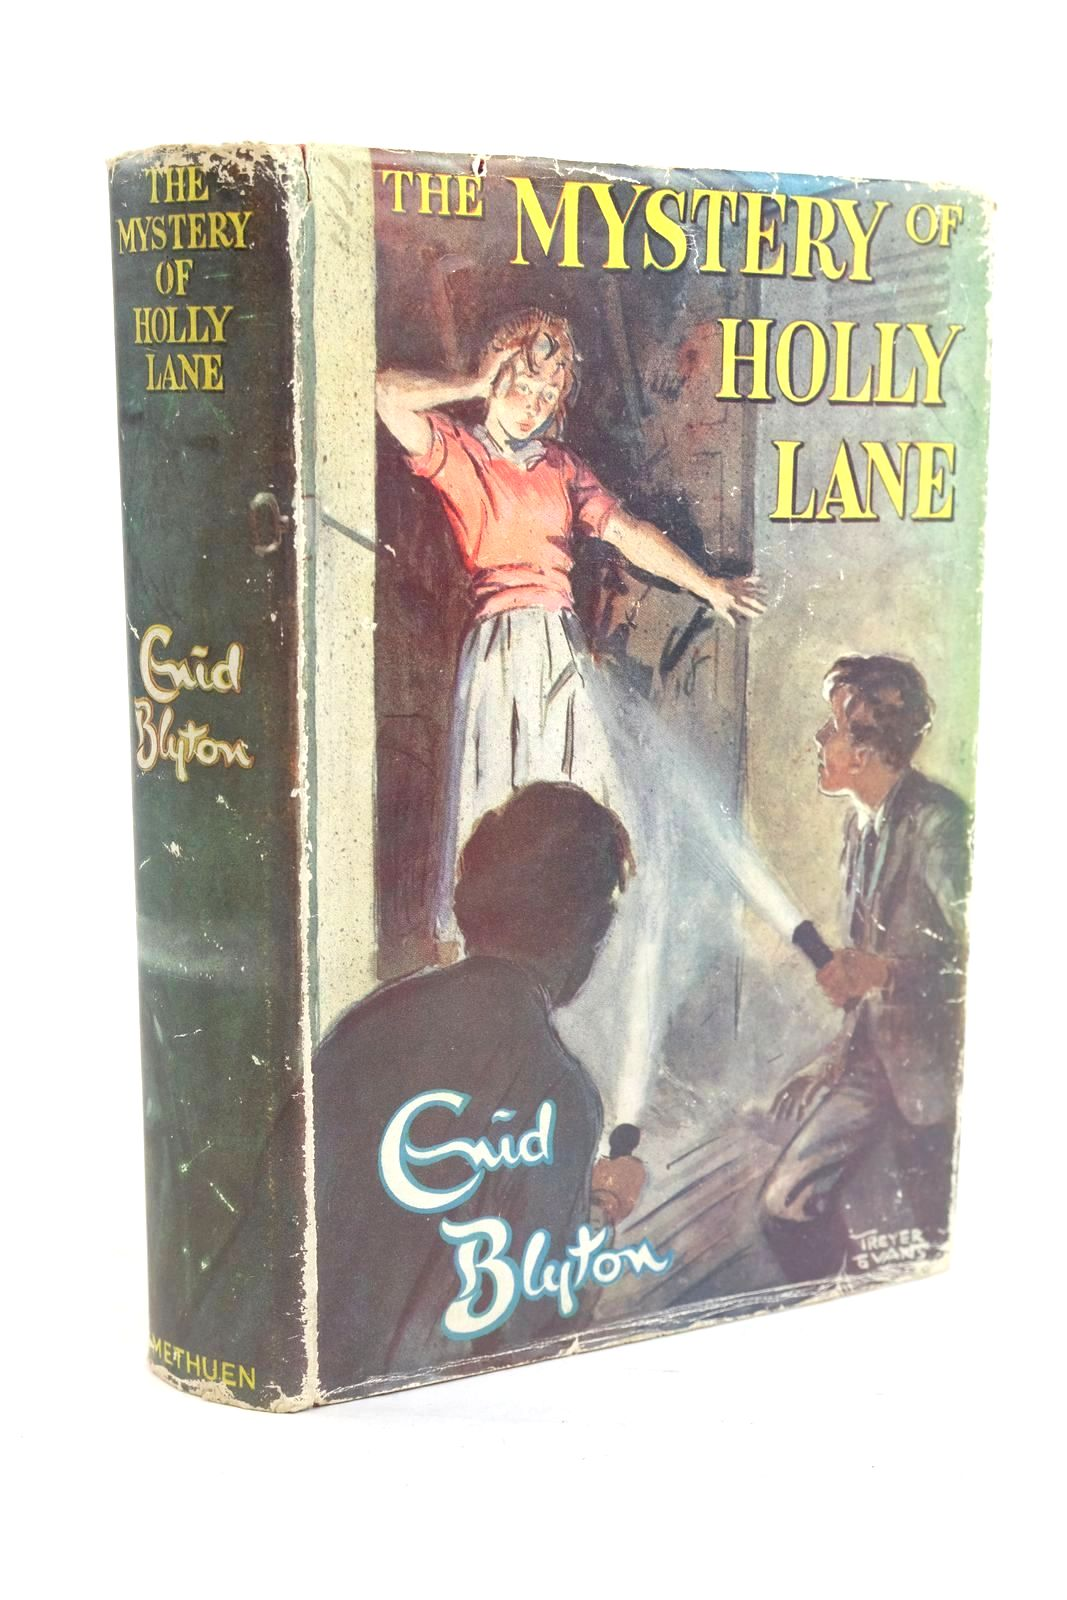 Photo of THE MYSTERY OF HOLLY LANE written by Blyton, Enid illustrated by Evans, Treyer published by Methuen & Co. Ltd. (STOCK CODE: 1320084)  for sale by Stella & Rose's Books